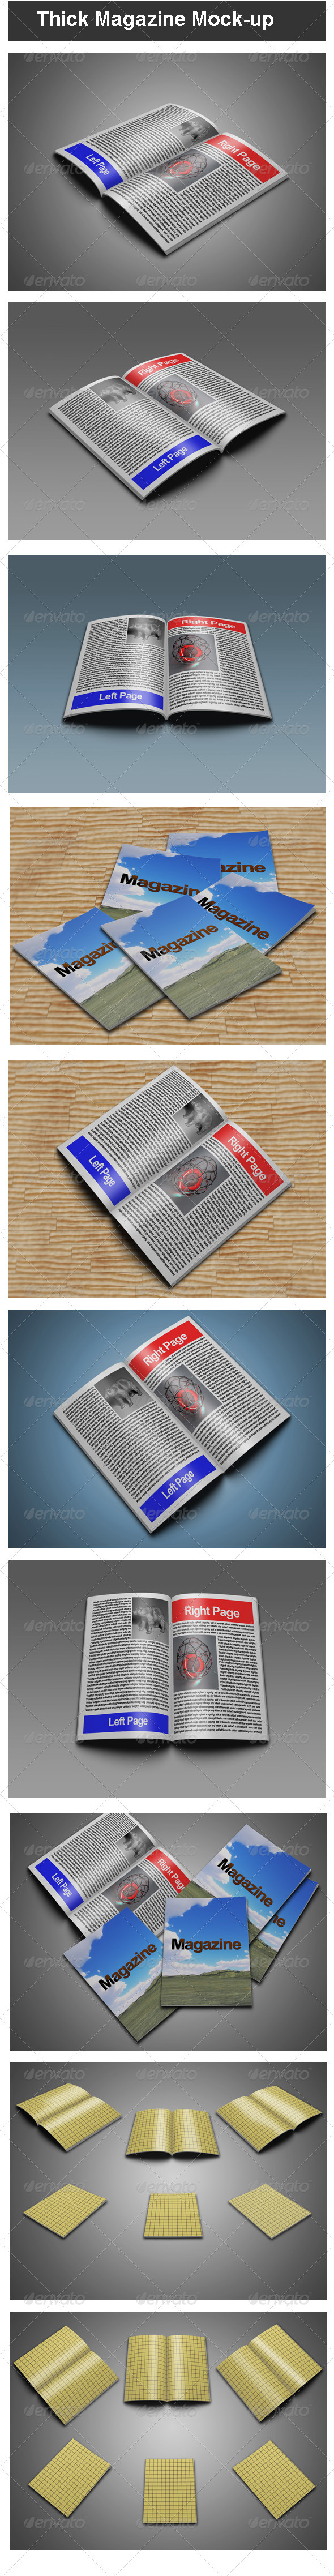 Thick Magazine Mock-up - Magazines Print